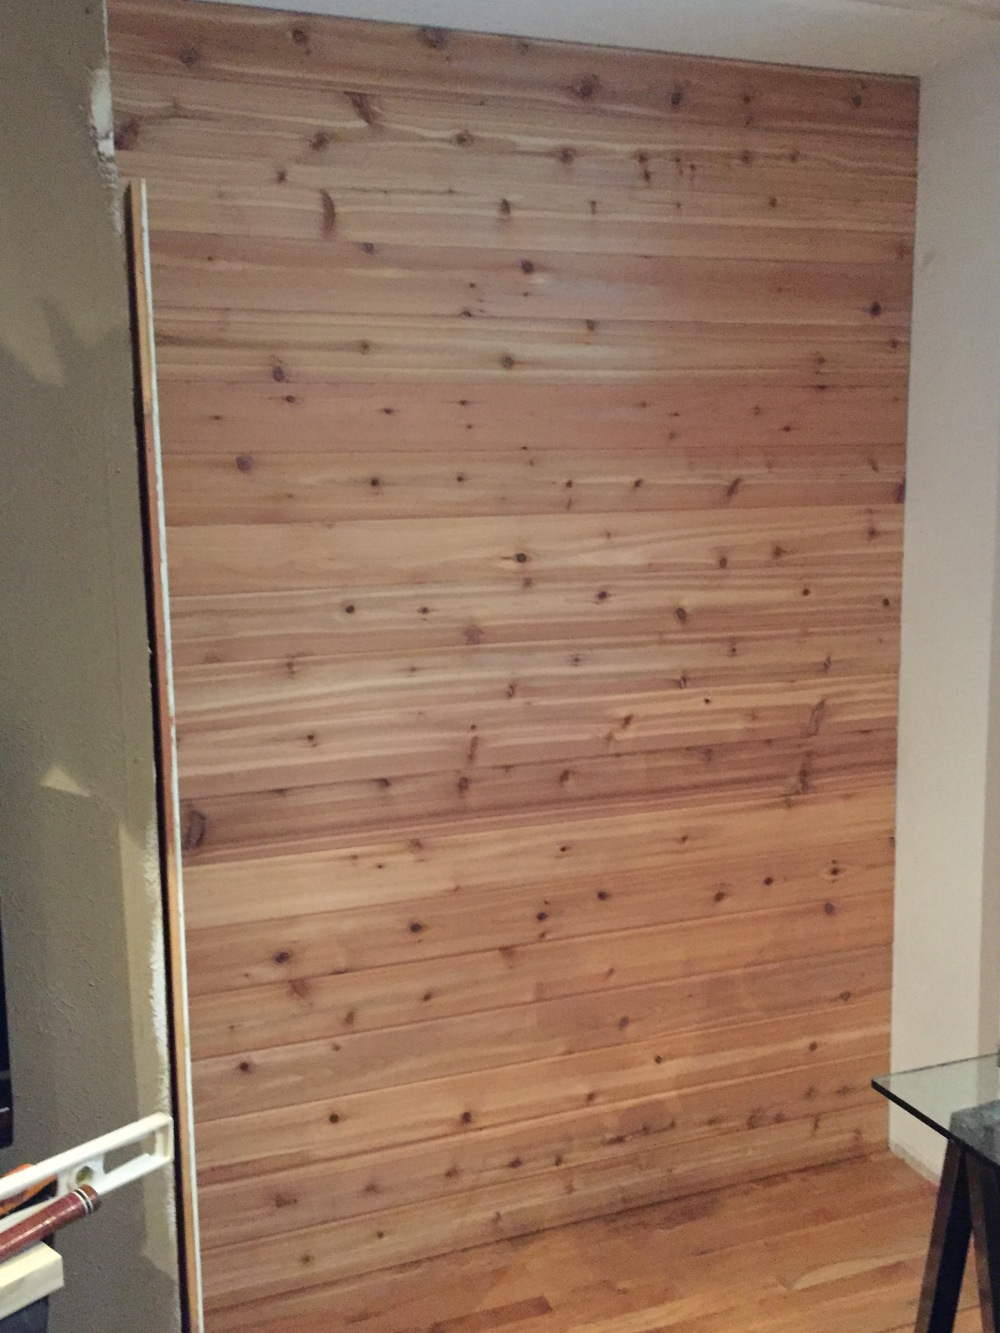 Finished Cedar Wall in the Master Bedroom Closet